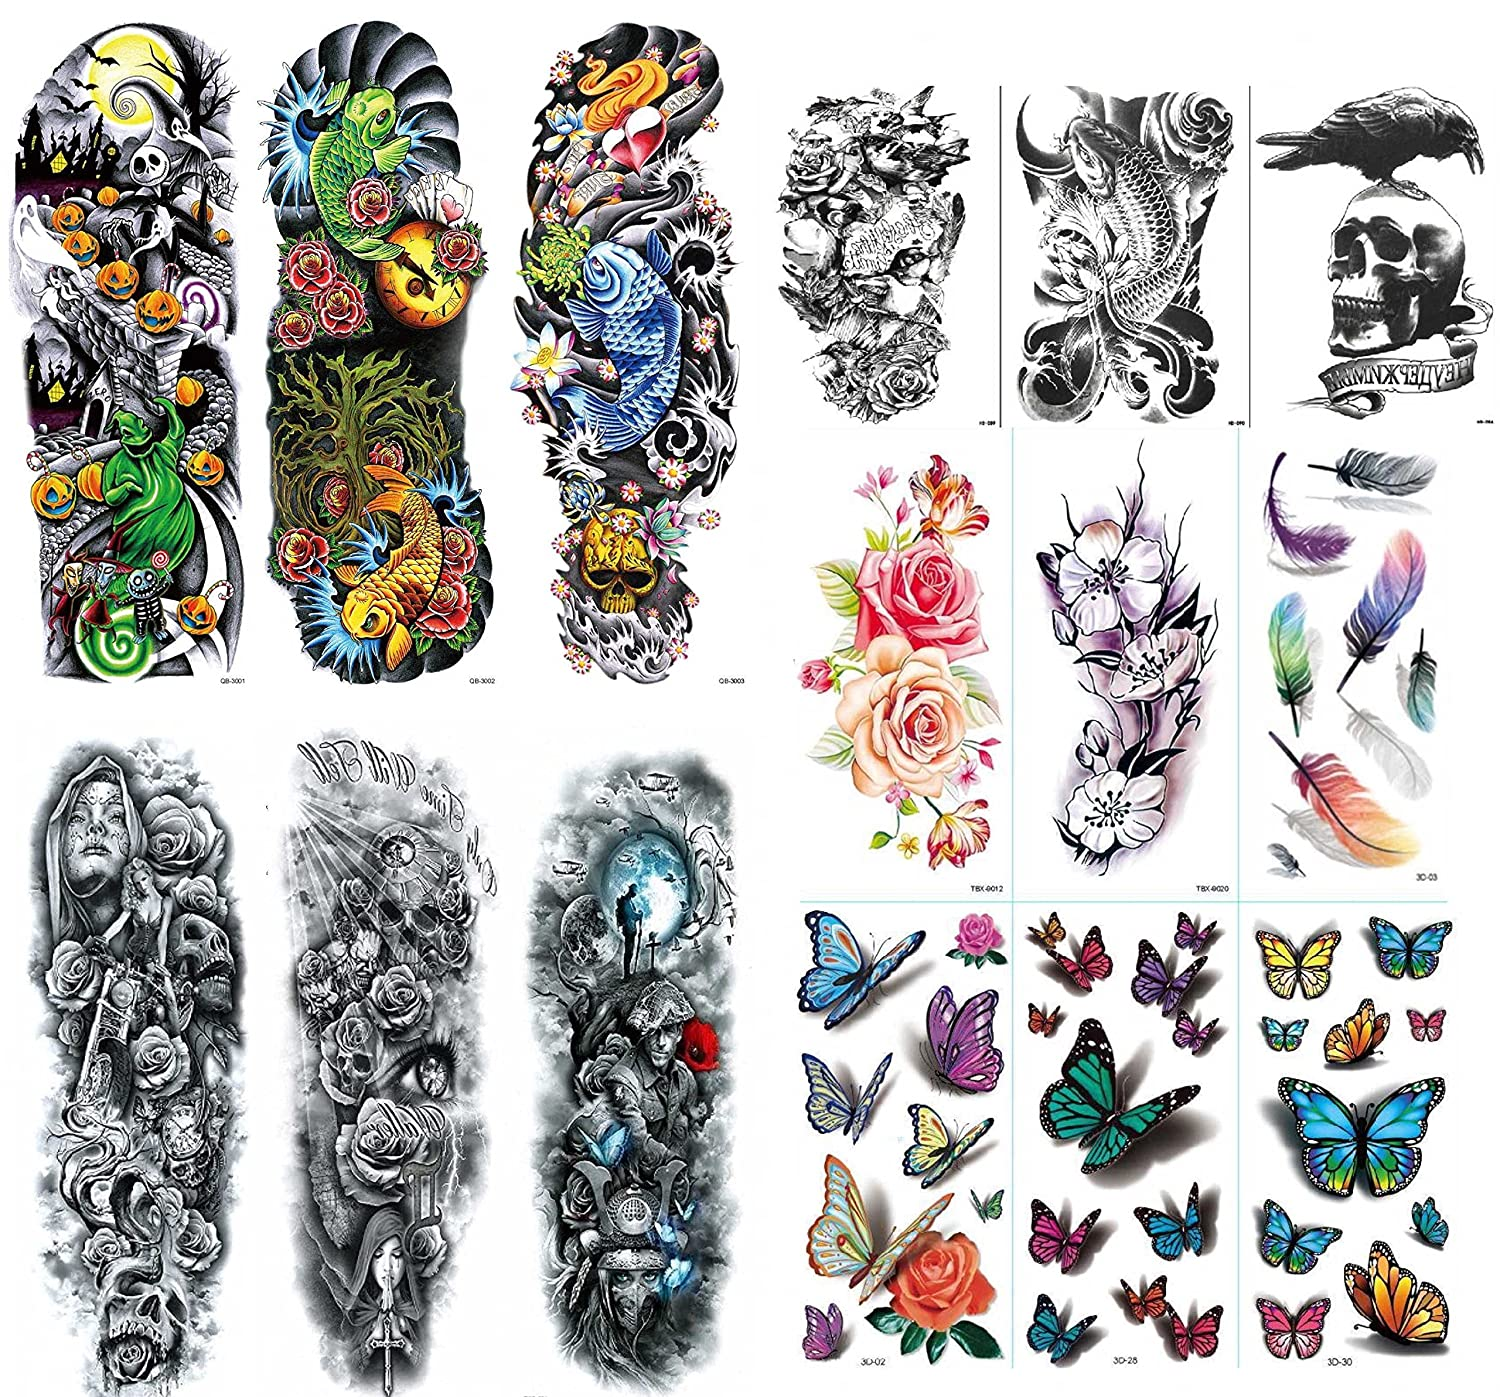 NutritionBizz Extra Large Full Arm Temporary Tattoos with 3D Tattoos for Men Women Teen Fake Tattoo 15 Sheets Butterfly Feather Flower Waterproof Stickers for Arms Shoulders Chest Back